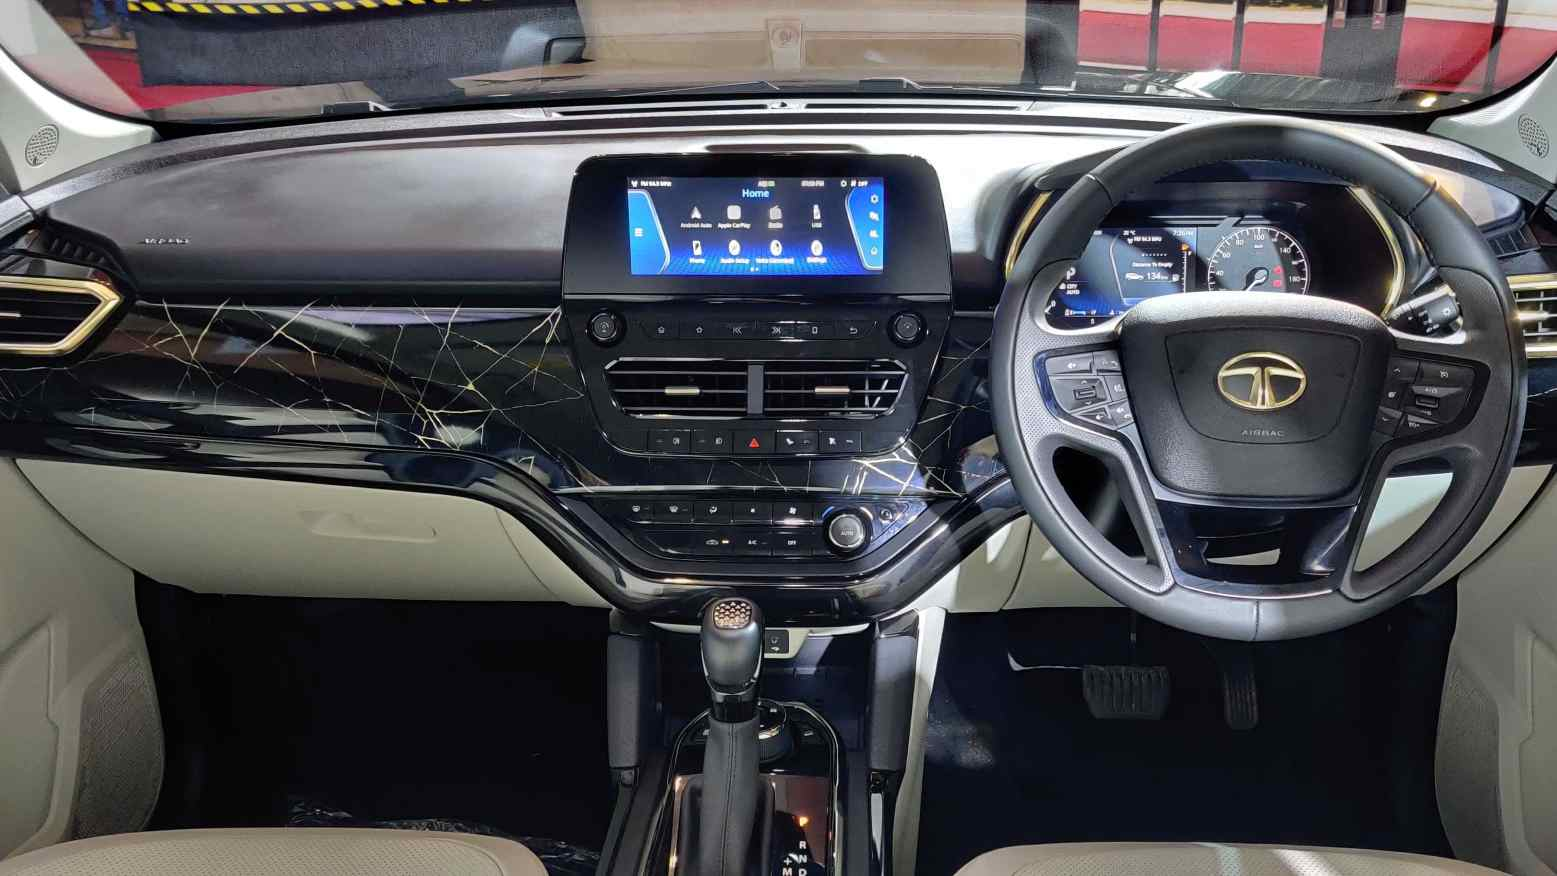 Marble-like dashboard trim accompanies more golden accents inside the Safari Gold. Image: Tech2/Amaan Ahmed